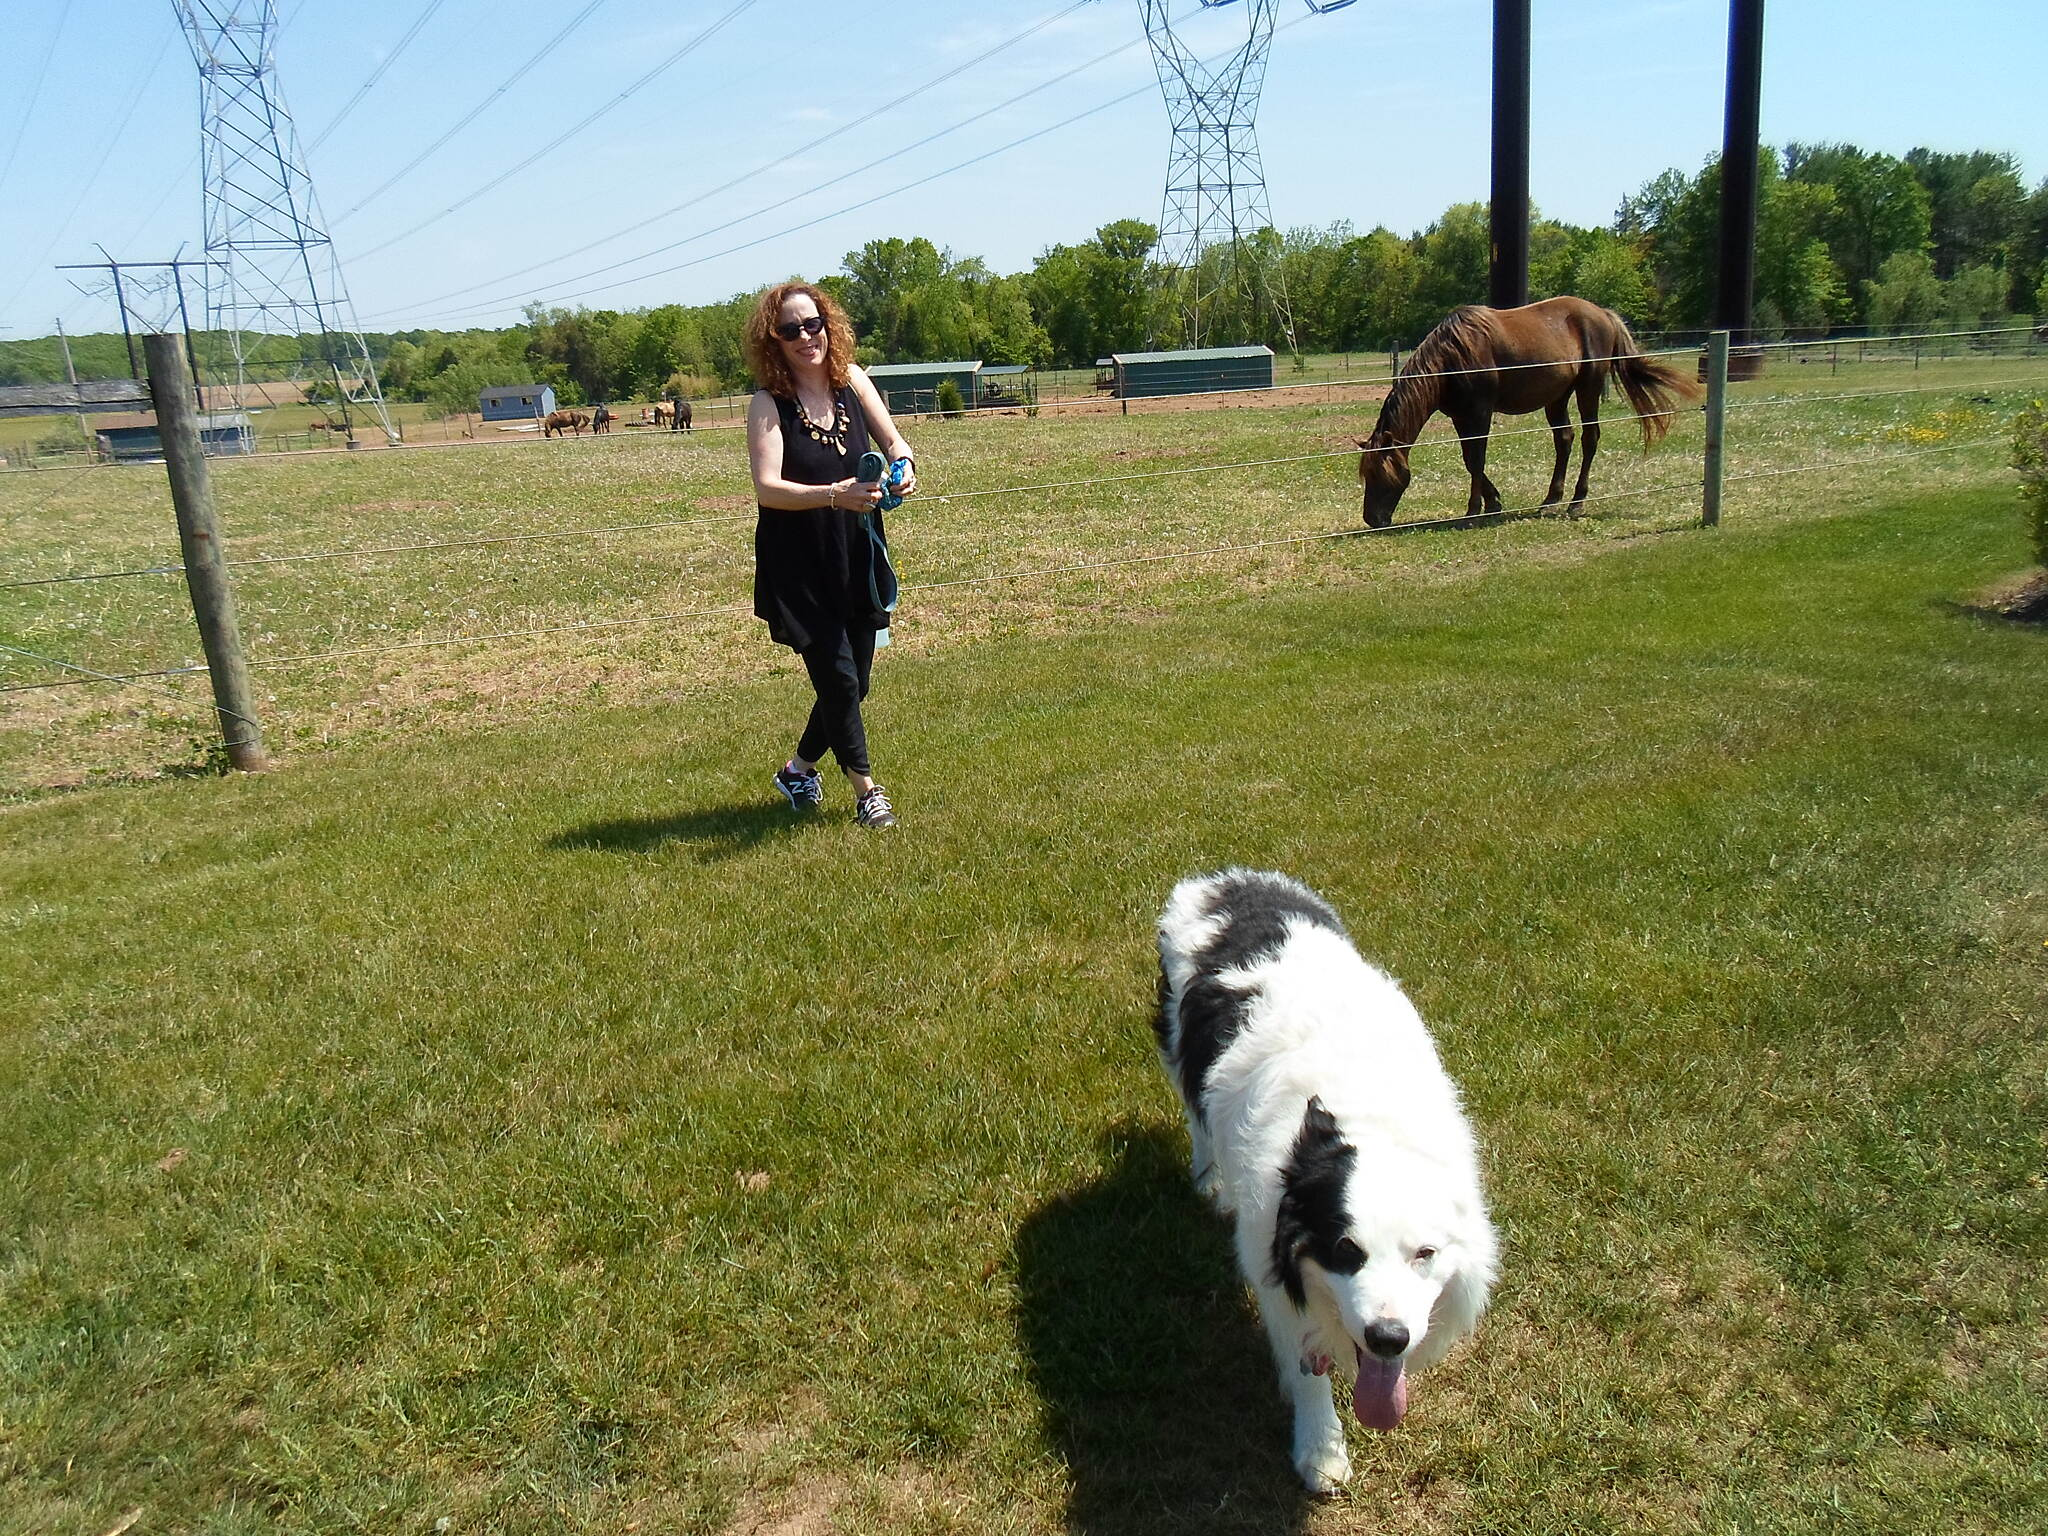 Skippack Trail Skippack Trail Another of the 'Fun E. Farm' women with her pet dog. Taken May 2015.